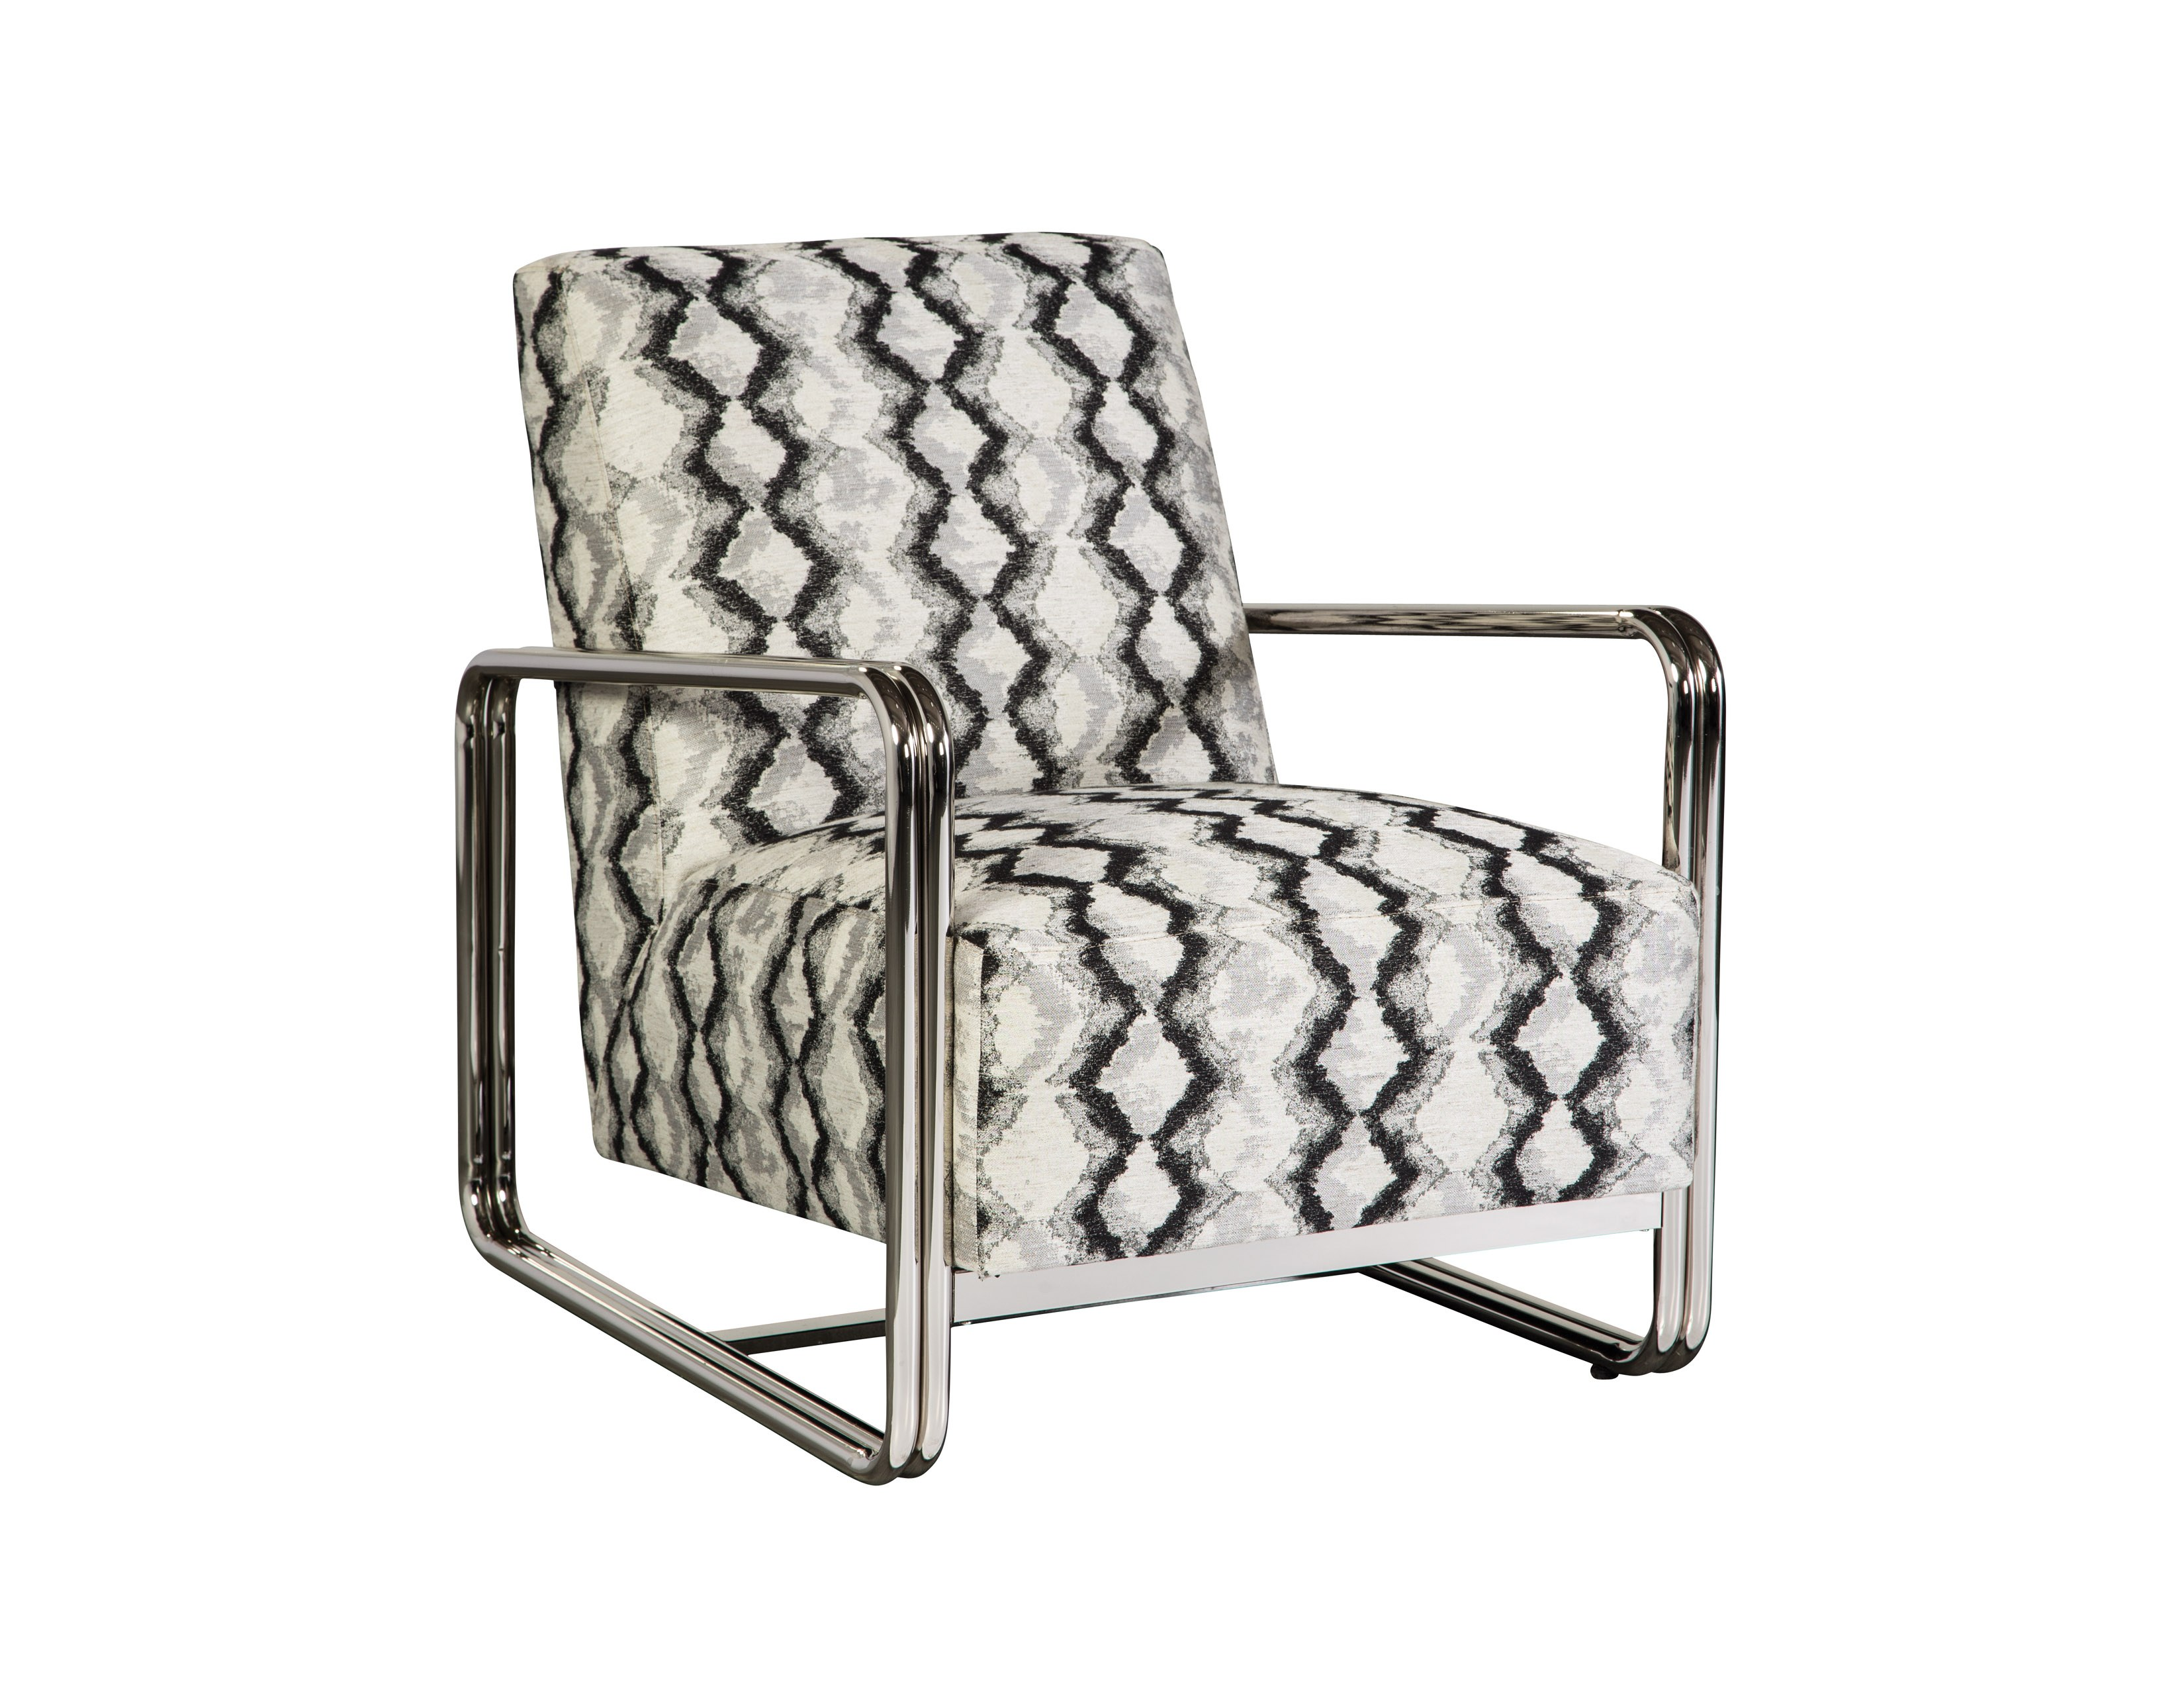 Copeland Chair Collection